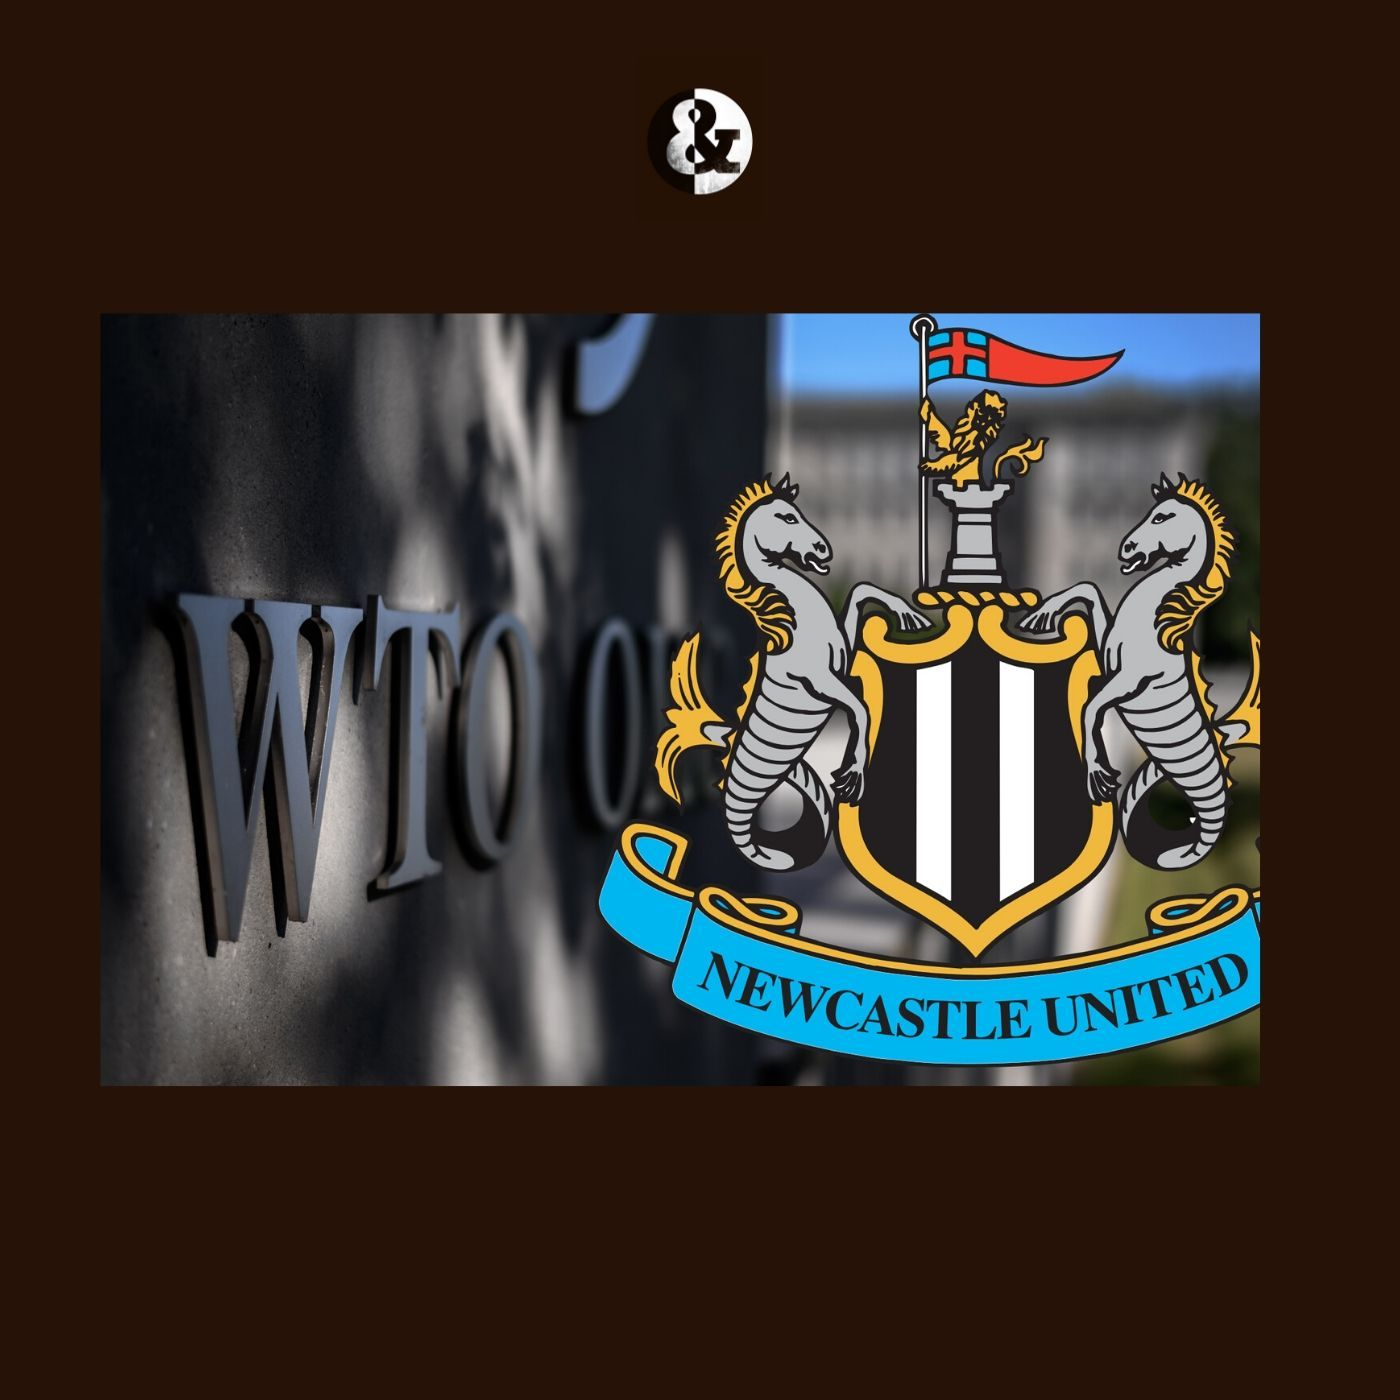 The WTO report: what did it say? And what does it mean for the NUFC takeover?